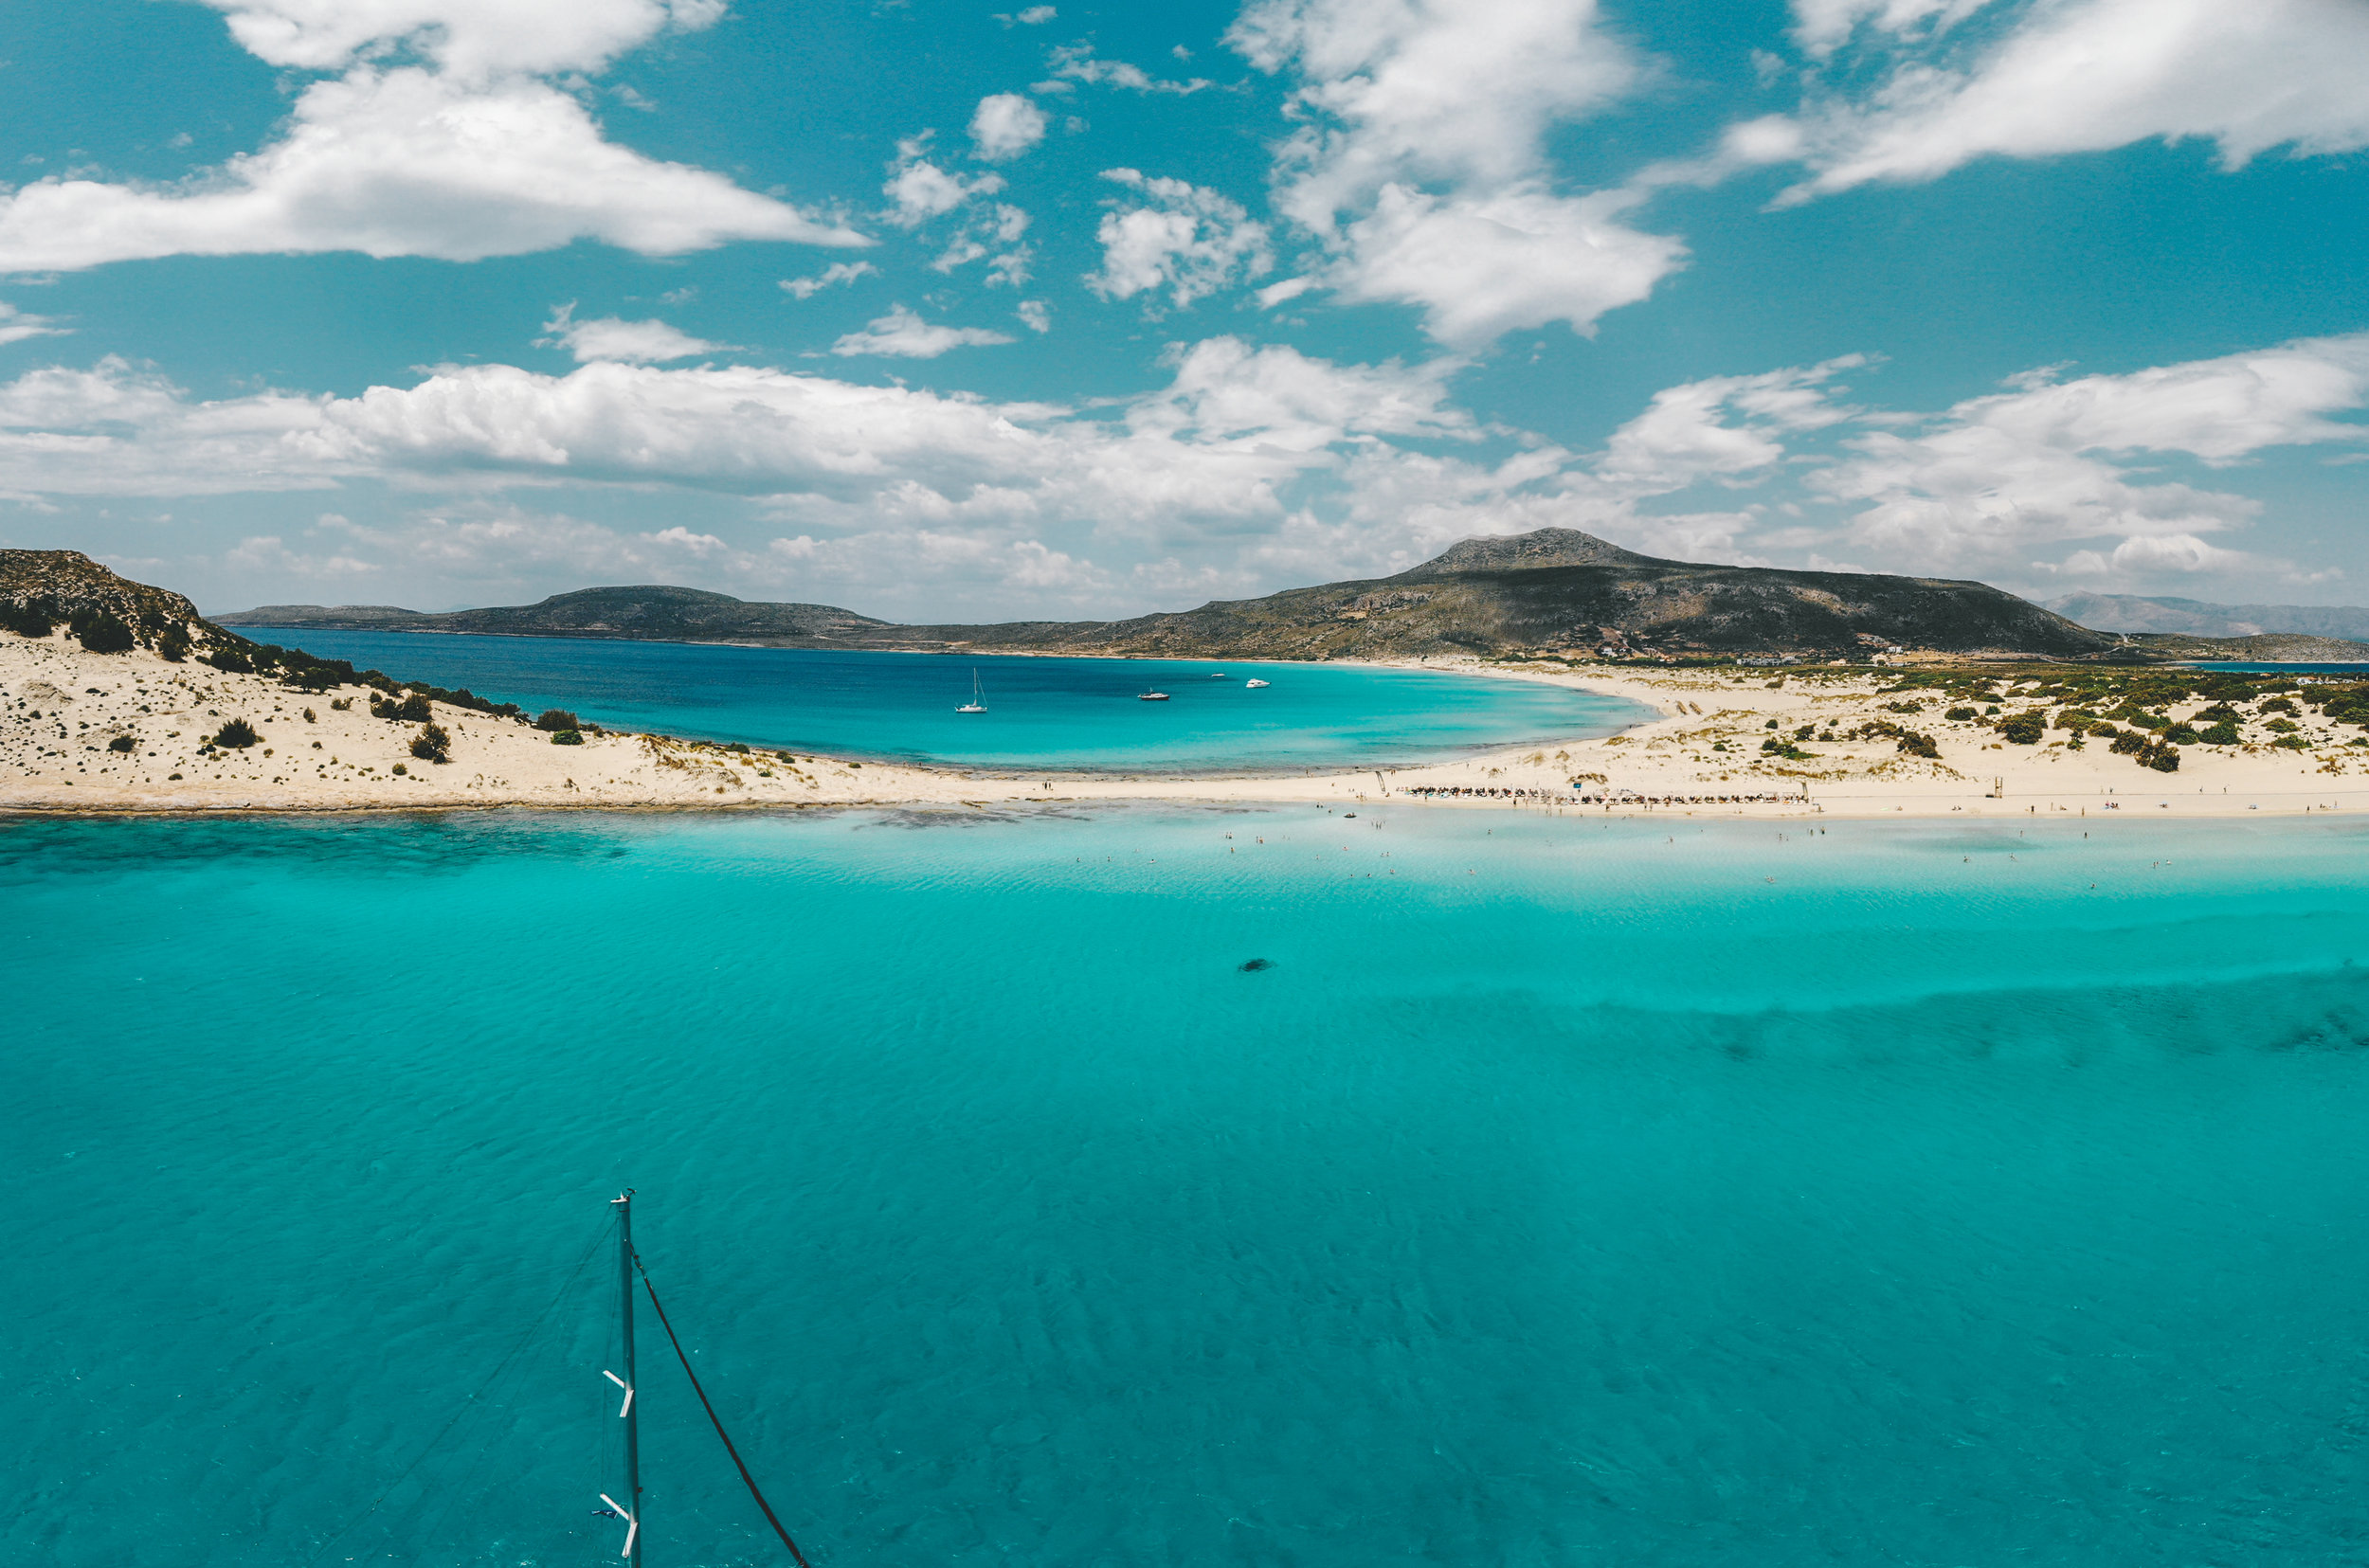 Beach in Lakonia, Peloponnese. Photo by  Alex Antoniadis  via Unsplash.